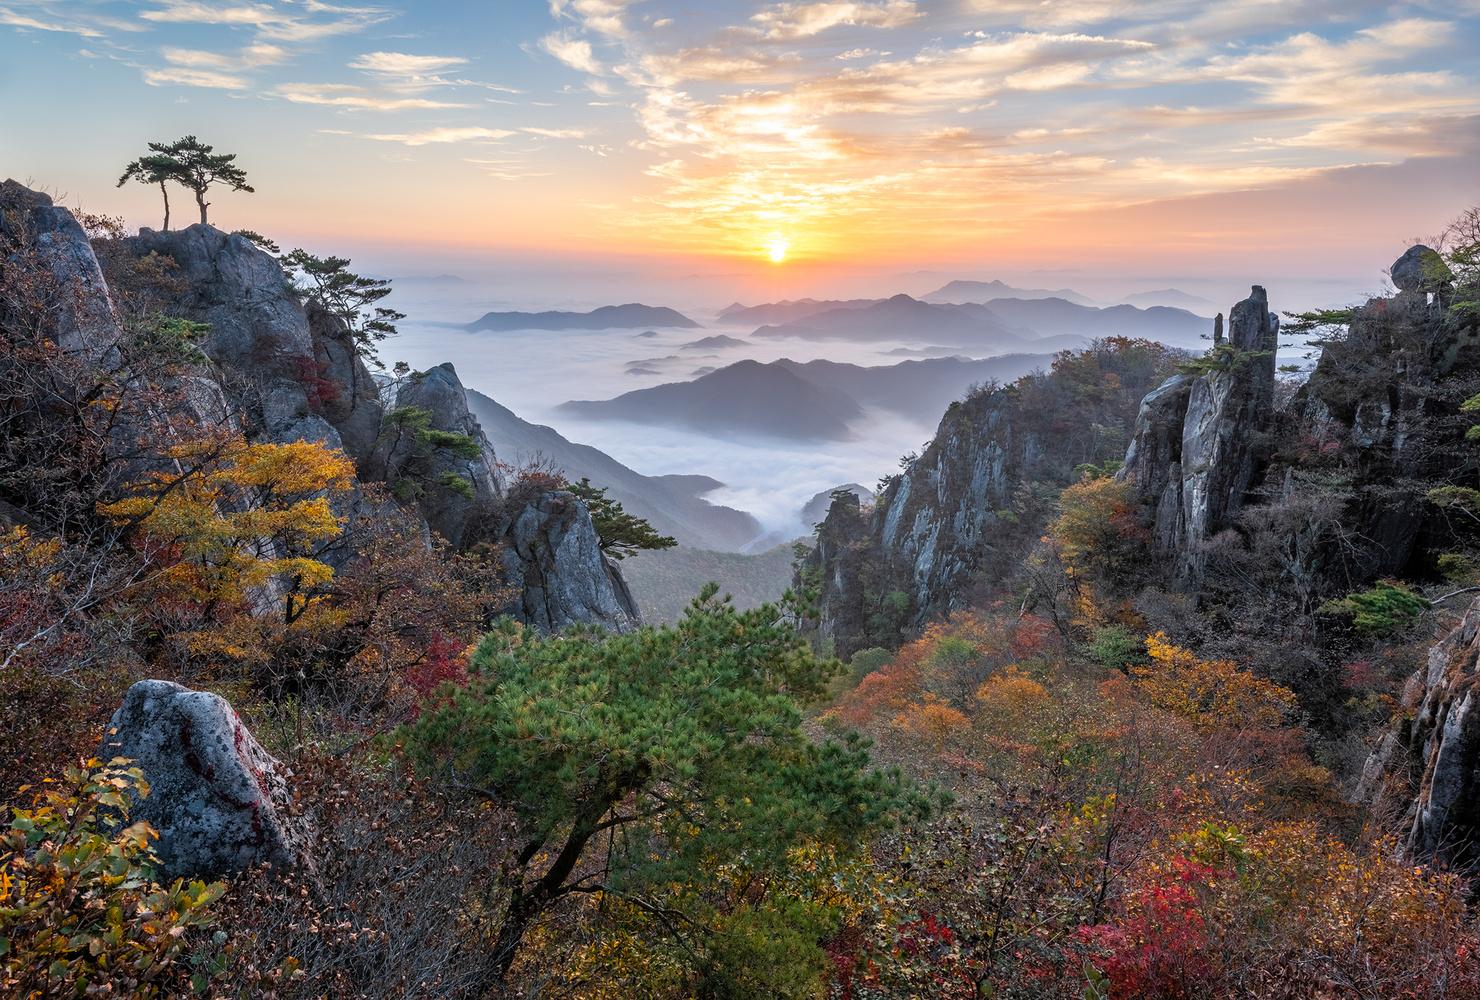 Valley of the clouds by jaeyoun Ryu